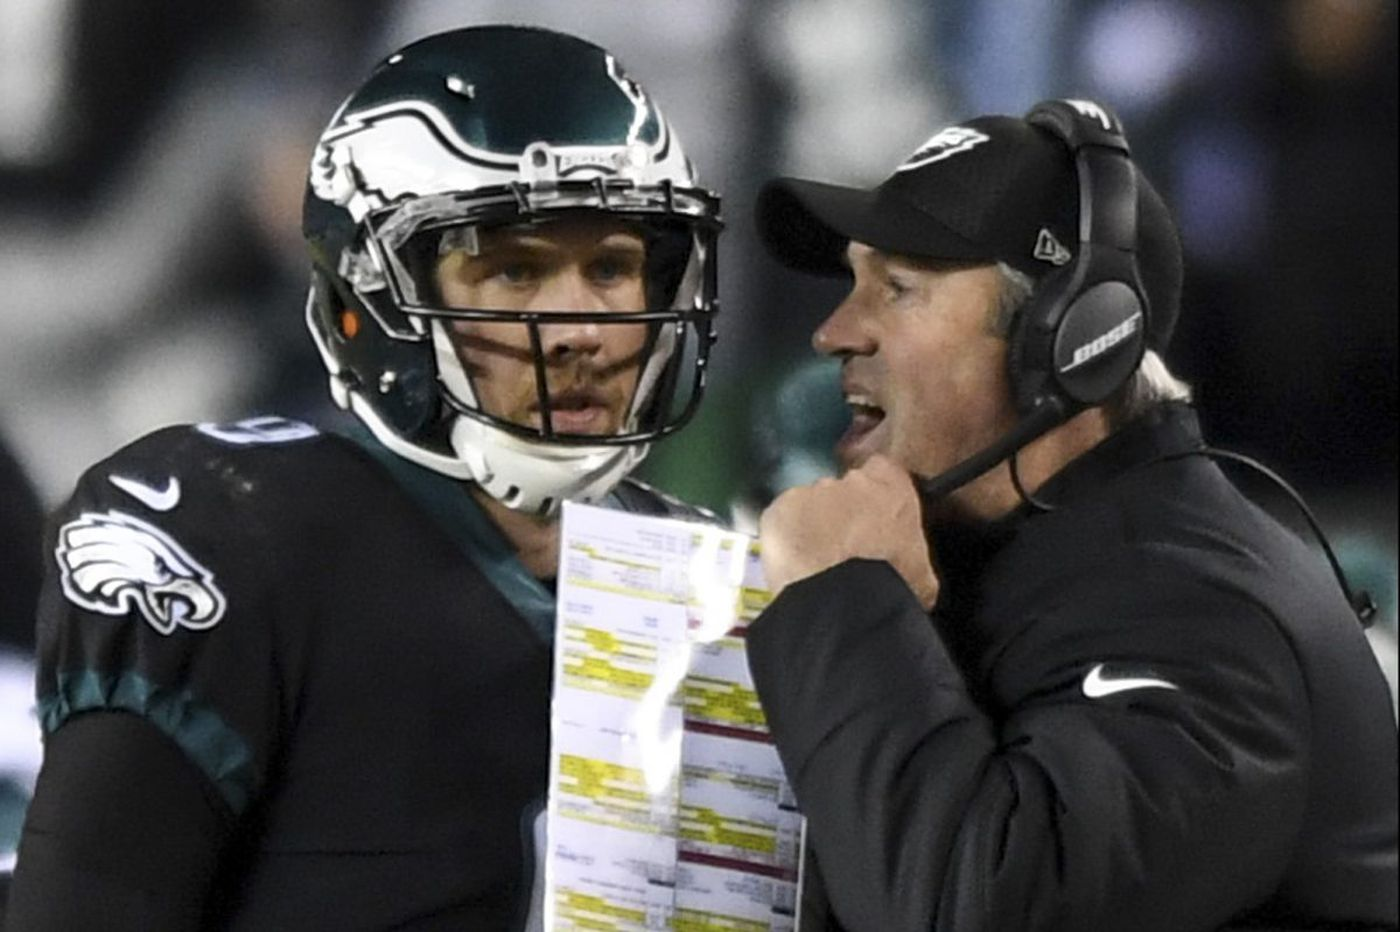 Doug Pederson has not made a decision about resting key players, hints he'll play Nick Foles vs. Dallas Cowboys